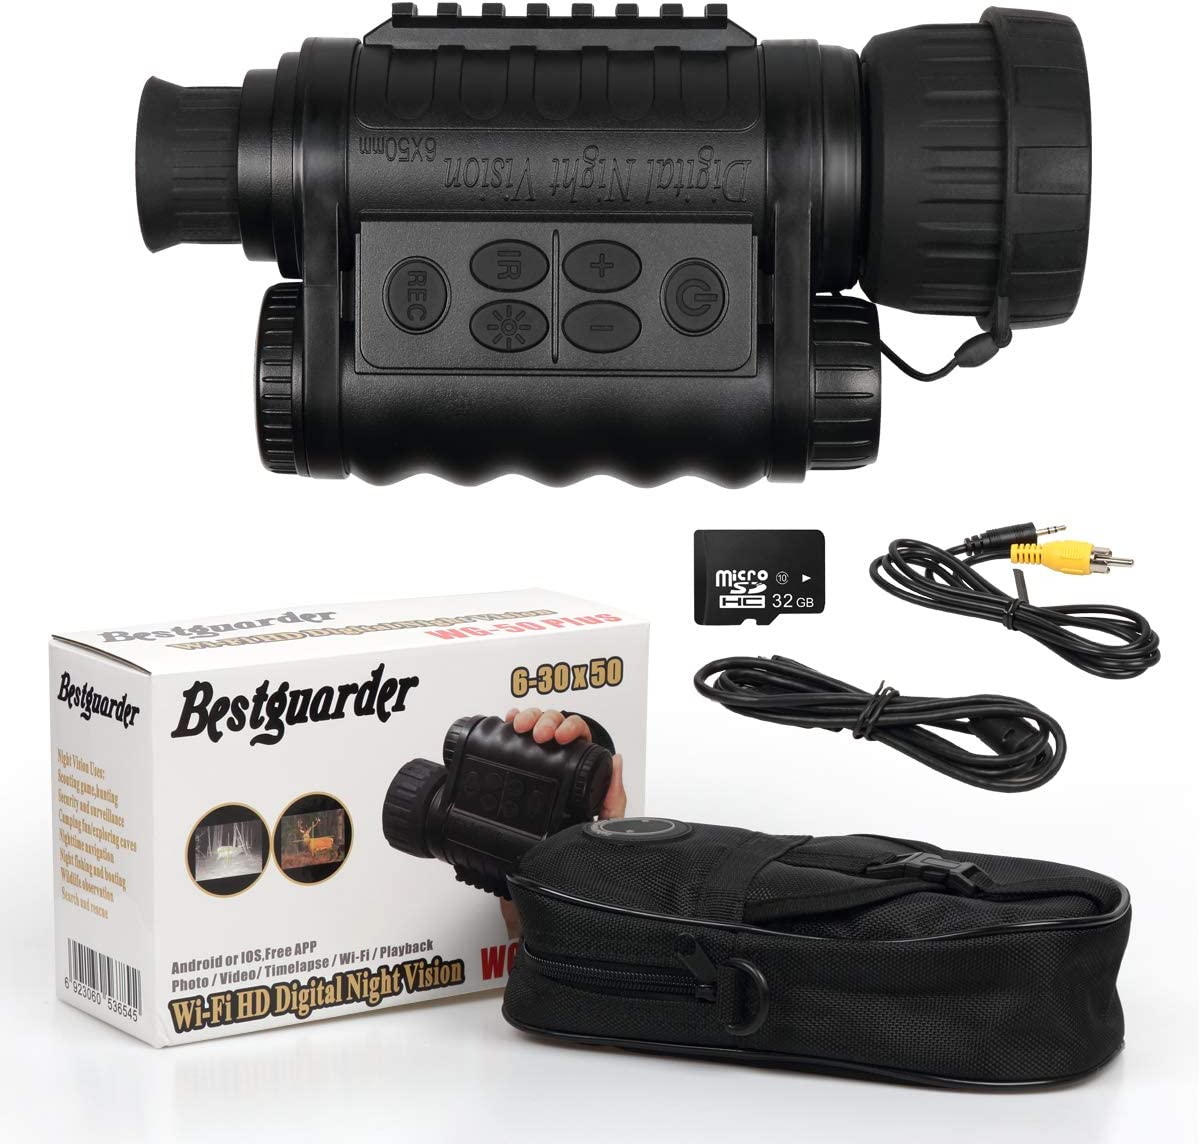 Bestguarder WG-50Plus 6x50mm WiFi Digital Night Vision Infrared IR Monocular with 32G Memory and Camera & Camcorder Function Takes 30mp Photo & 720p Video from 1300ft for Night Hunting or Viewing